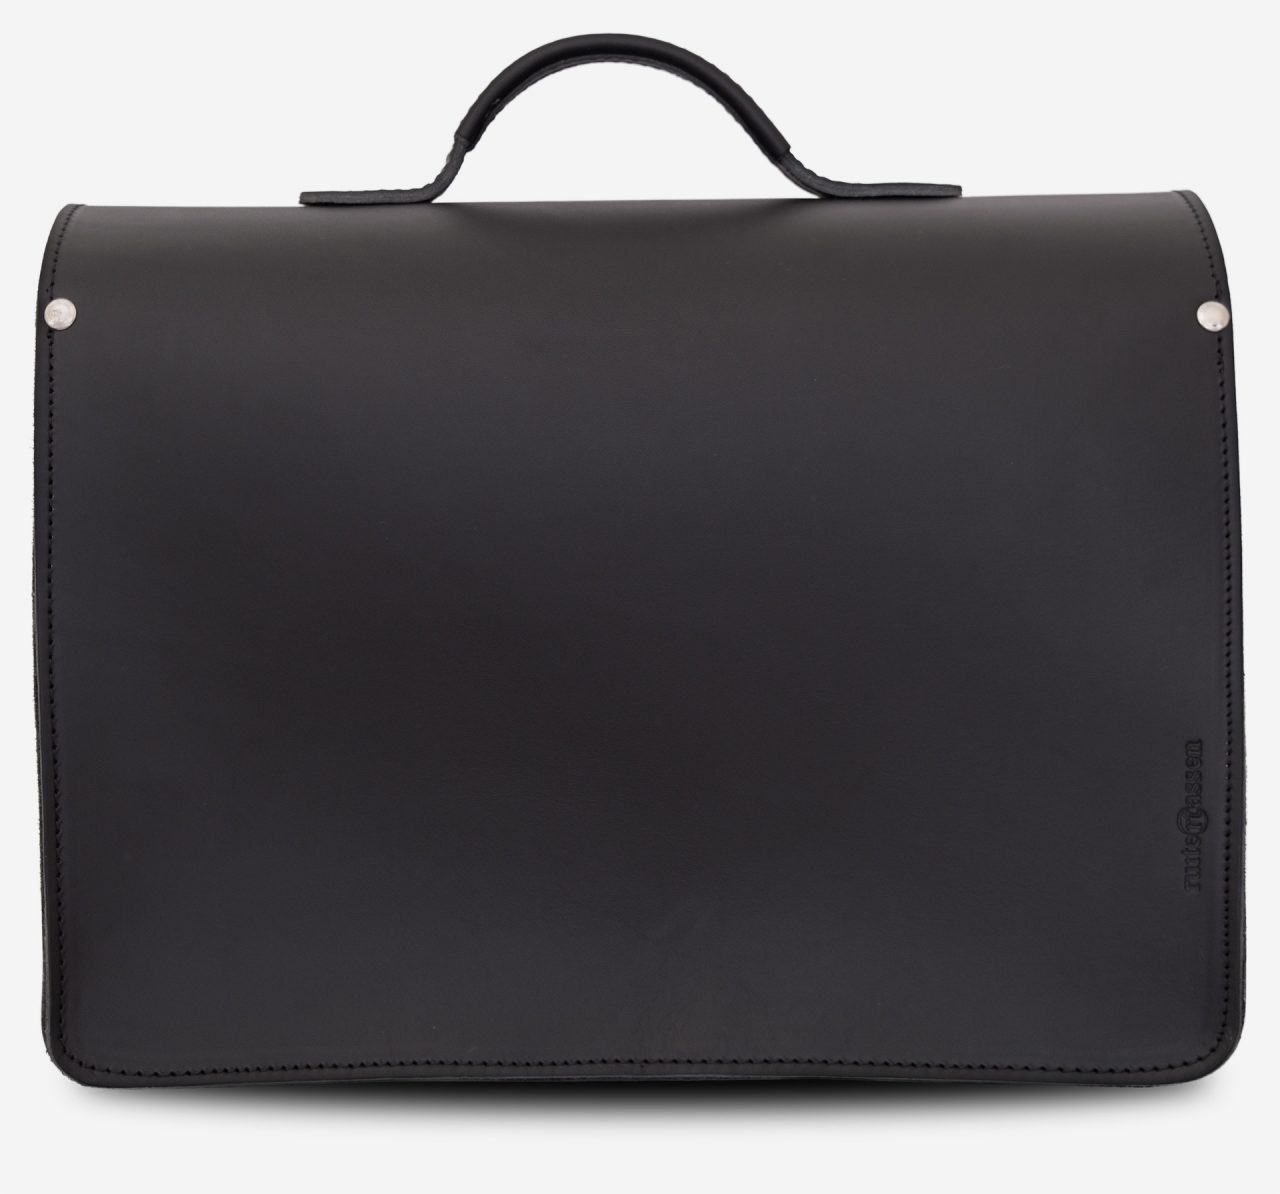 Back view of black leather laptop satchel bag with 2 gussets and asymmetric front pockets 112337.